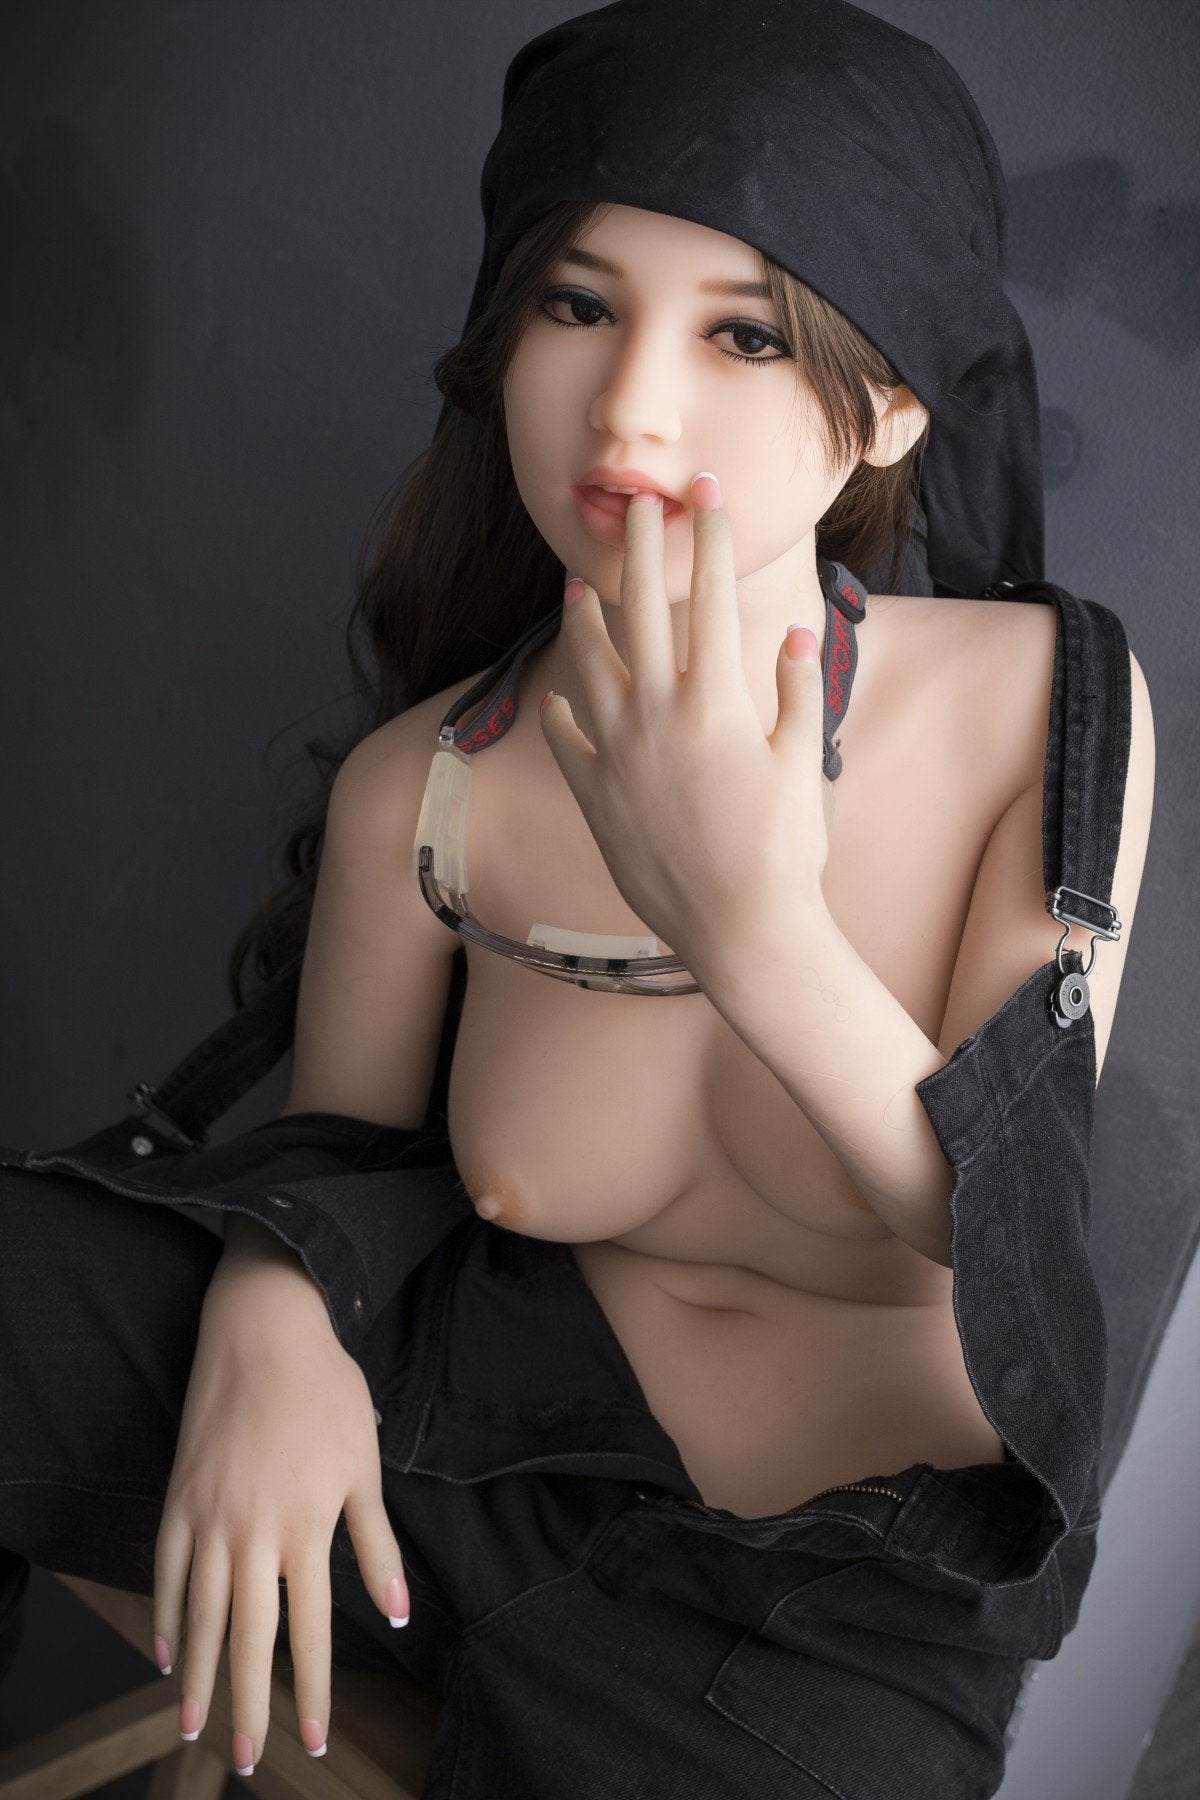 madolyn 145cm brown hair medium tits skinny tpe wm asian small sex doll(3)